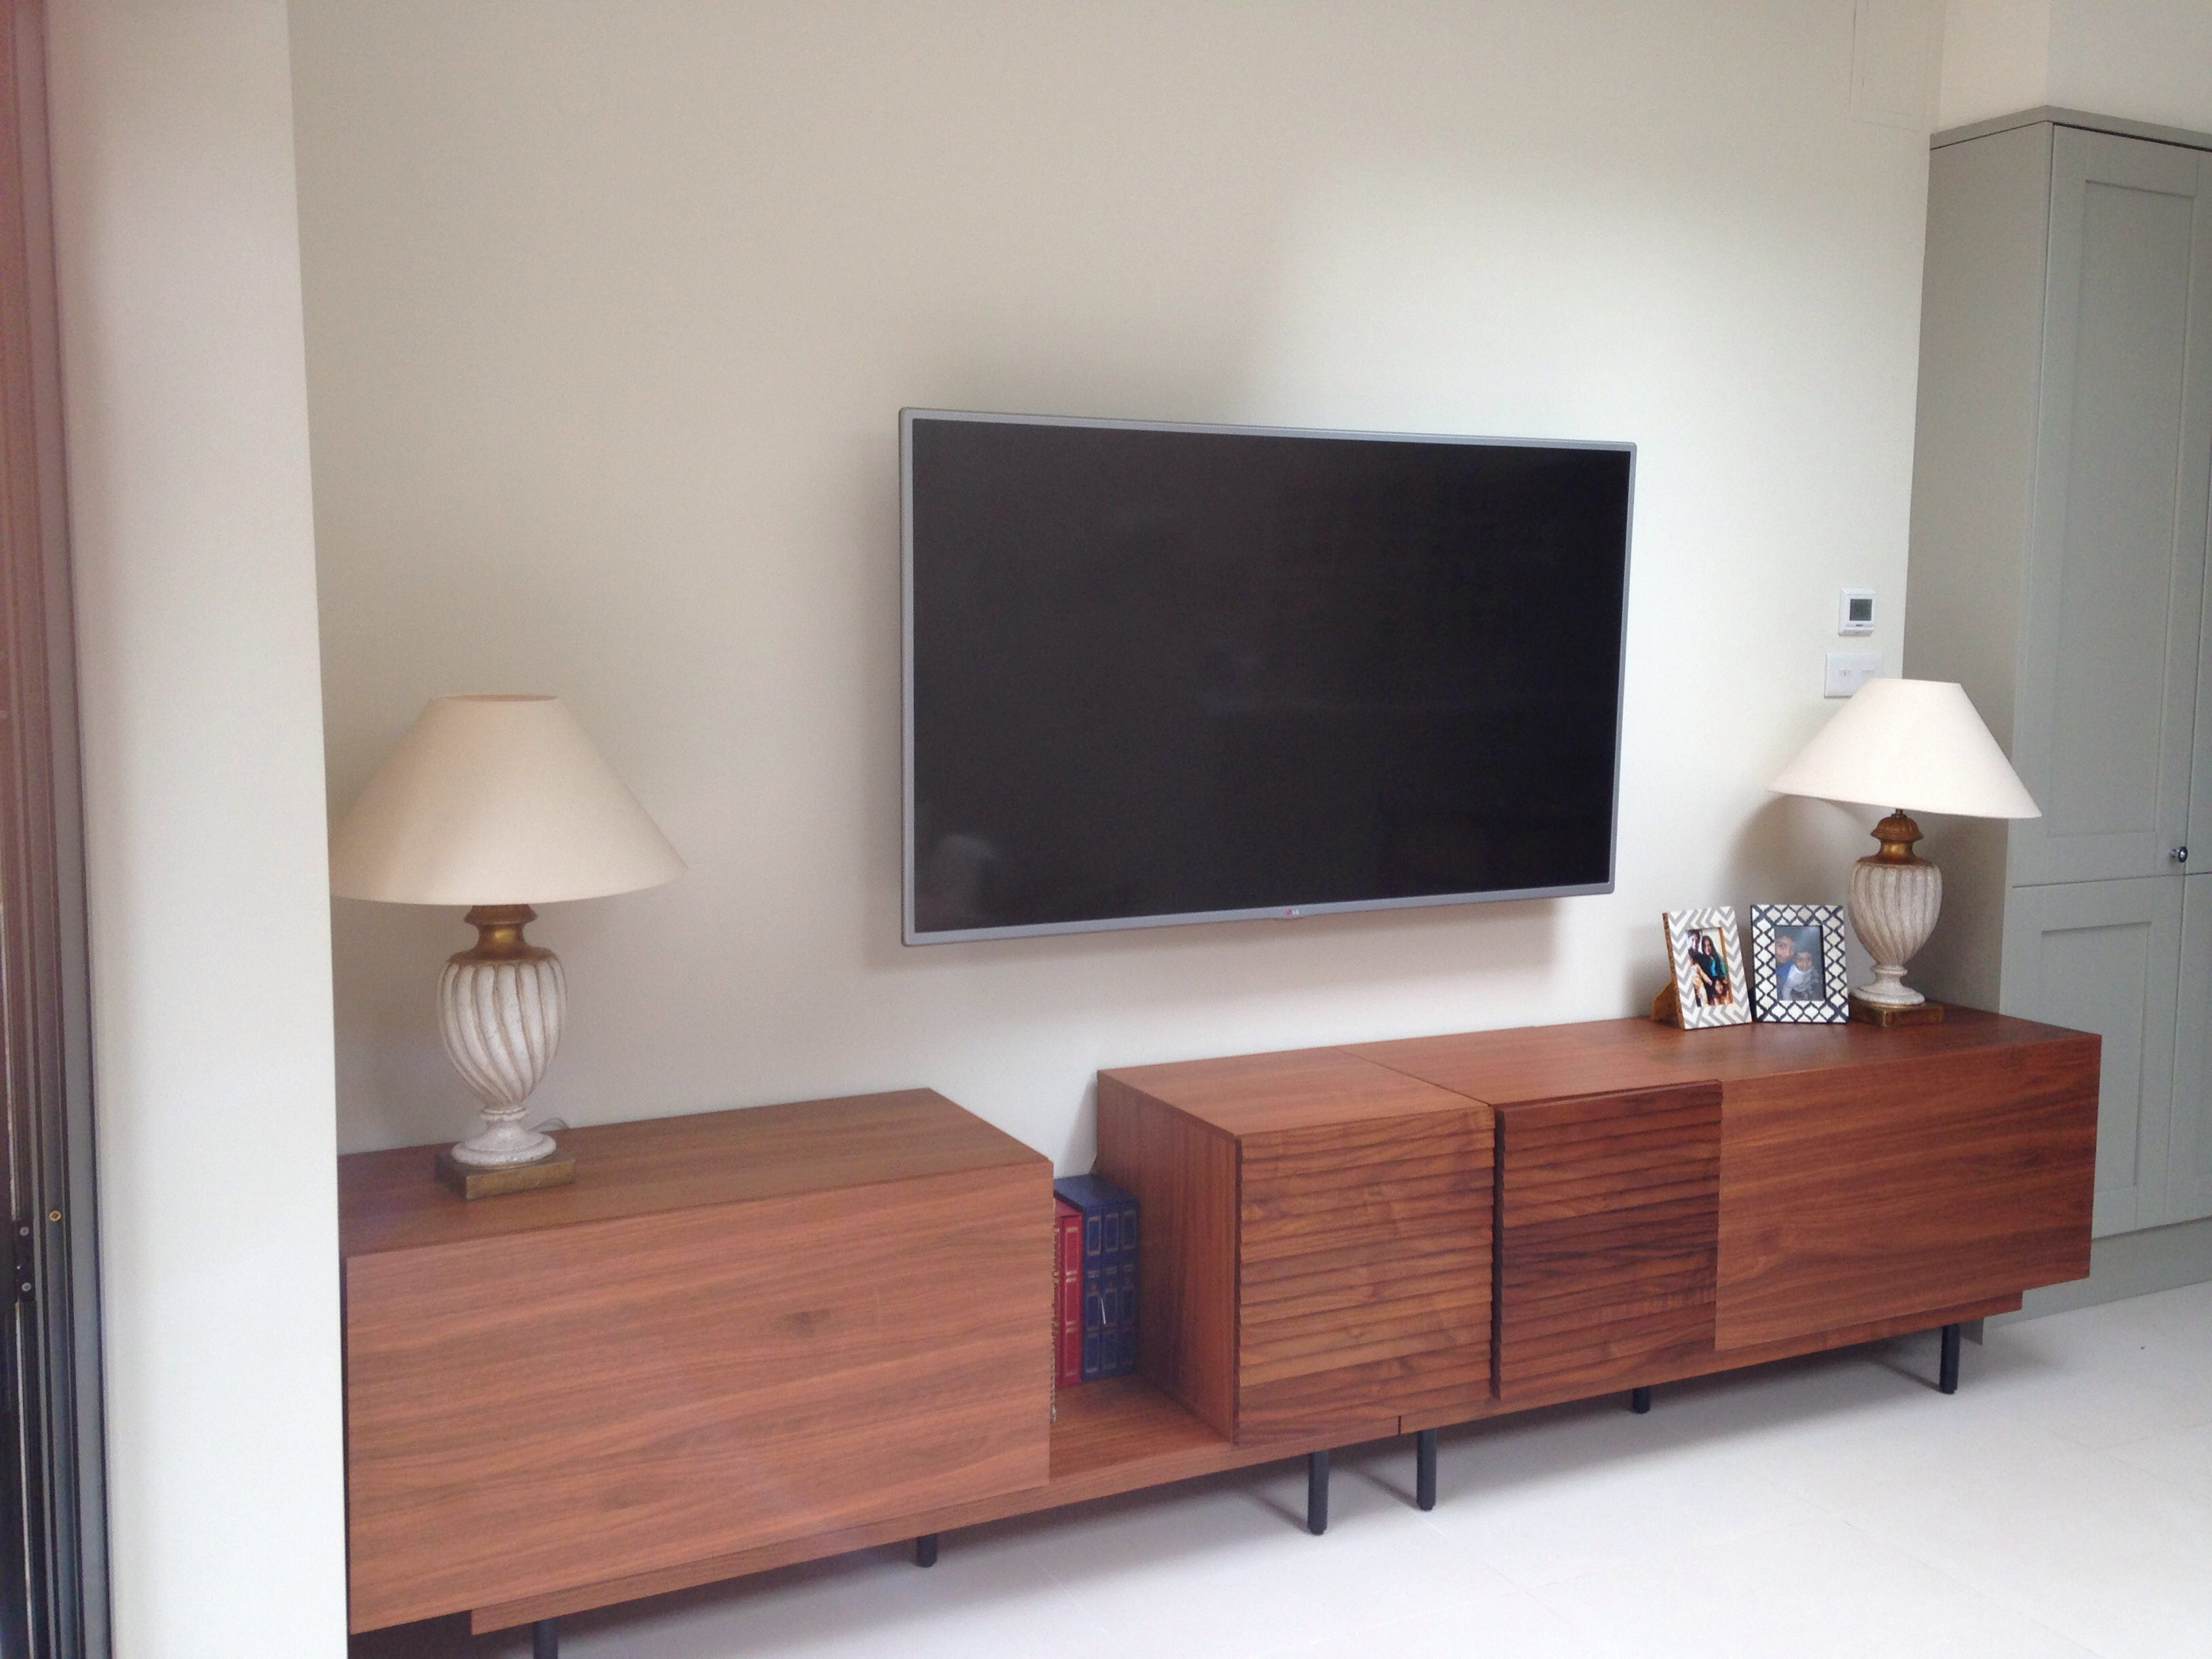 Tv Cabinet Kitchen Habitat Bocksey Arranged As Kitchen Tv Stand Family Room